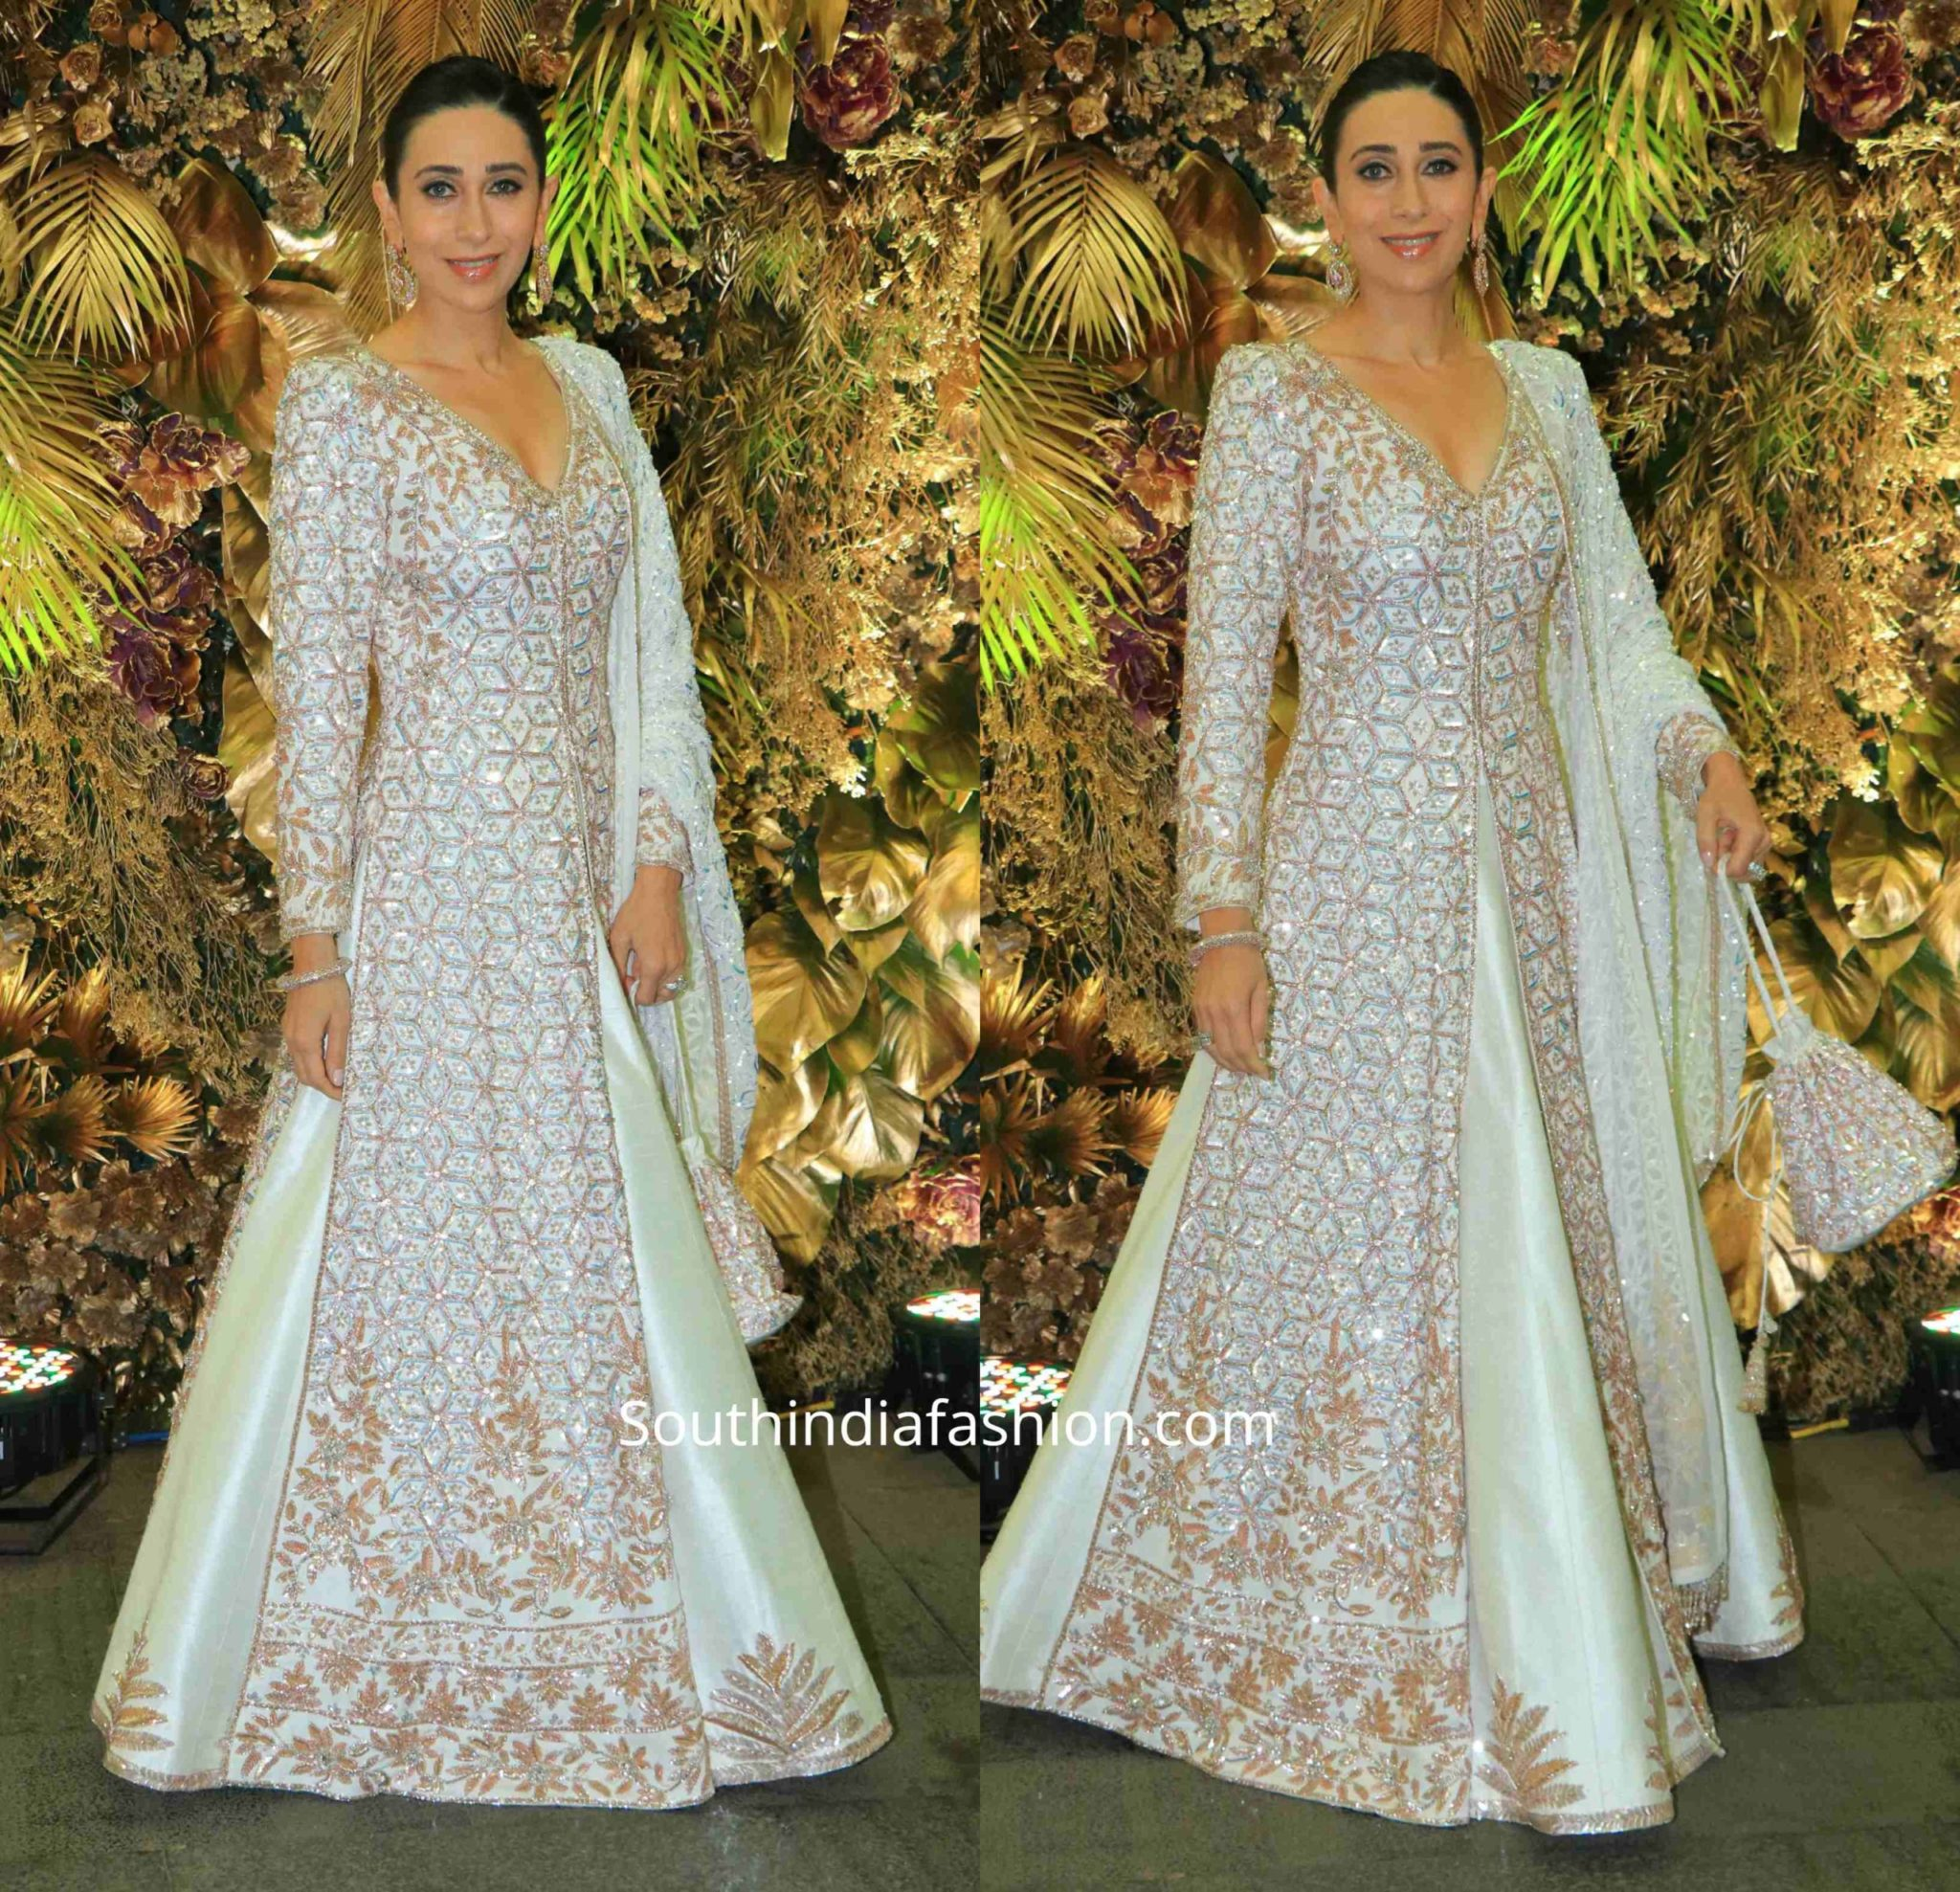 karisma kapoor in manish malhotra white anarkali at armaan jain wedding reception (1)